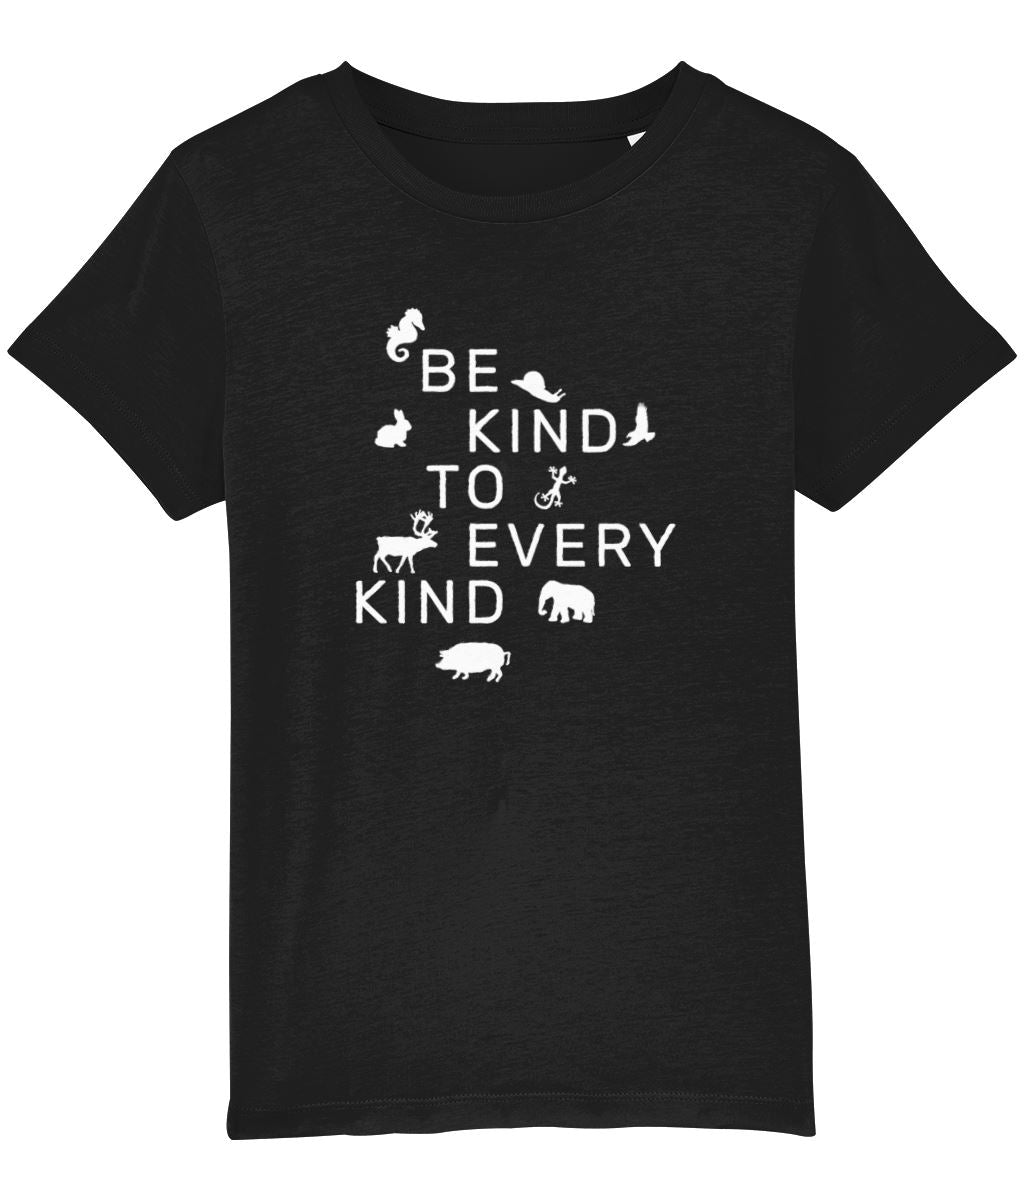 """Be Kind To Every Kind"" Children's Vegan T-Shirt (Unisex) Clothing Vegan Original Black 3-4 years"